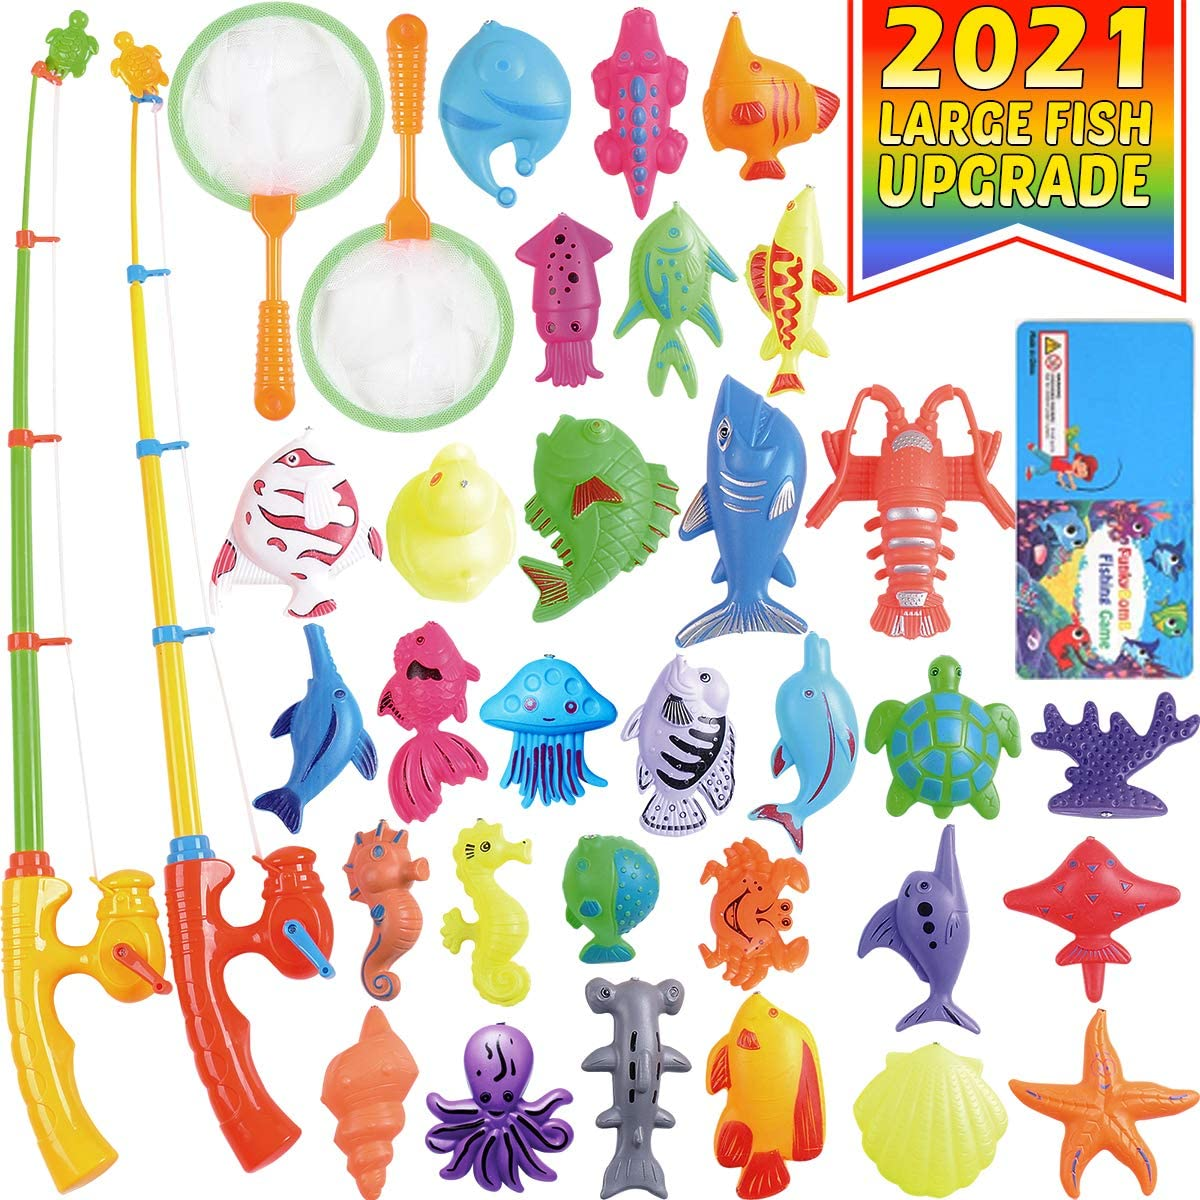 CozyBomB Magnetic Fishing Pool Toys Game for Kids – Water Table Bathtub Kiddie Party Toy with Pole Rod Net Plastic Floating Fish Toddler Color Ocean Sea Animals Age 3 4 5 6 Year Old